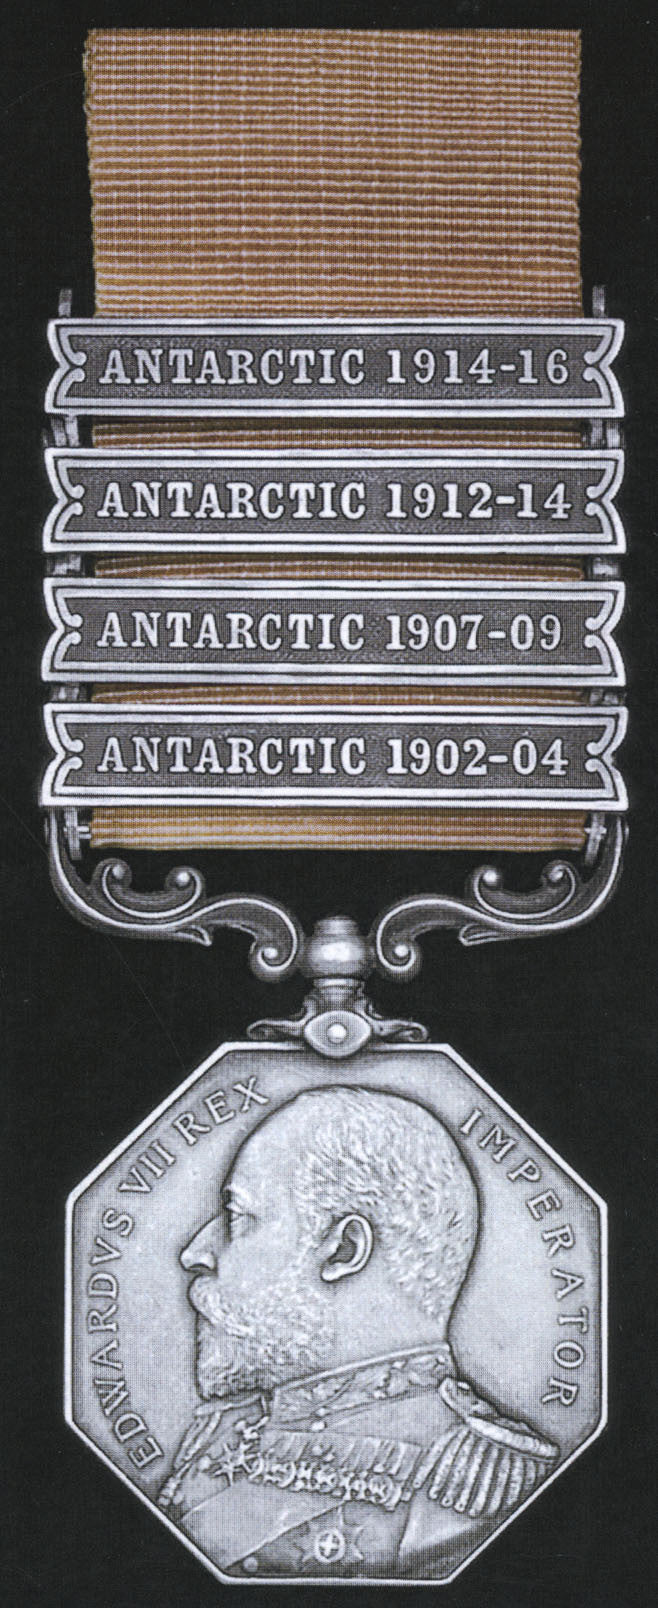 Polar medal for Captain Lawrence Oates, Birdie Bowers, Edgar Evans for Scott's Antarctic